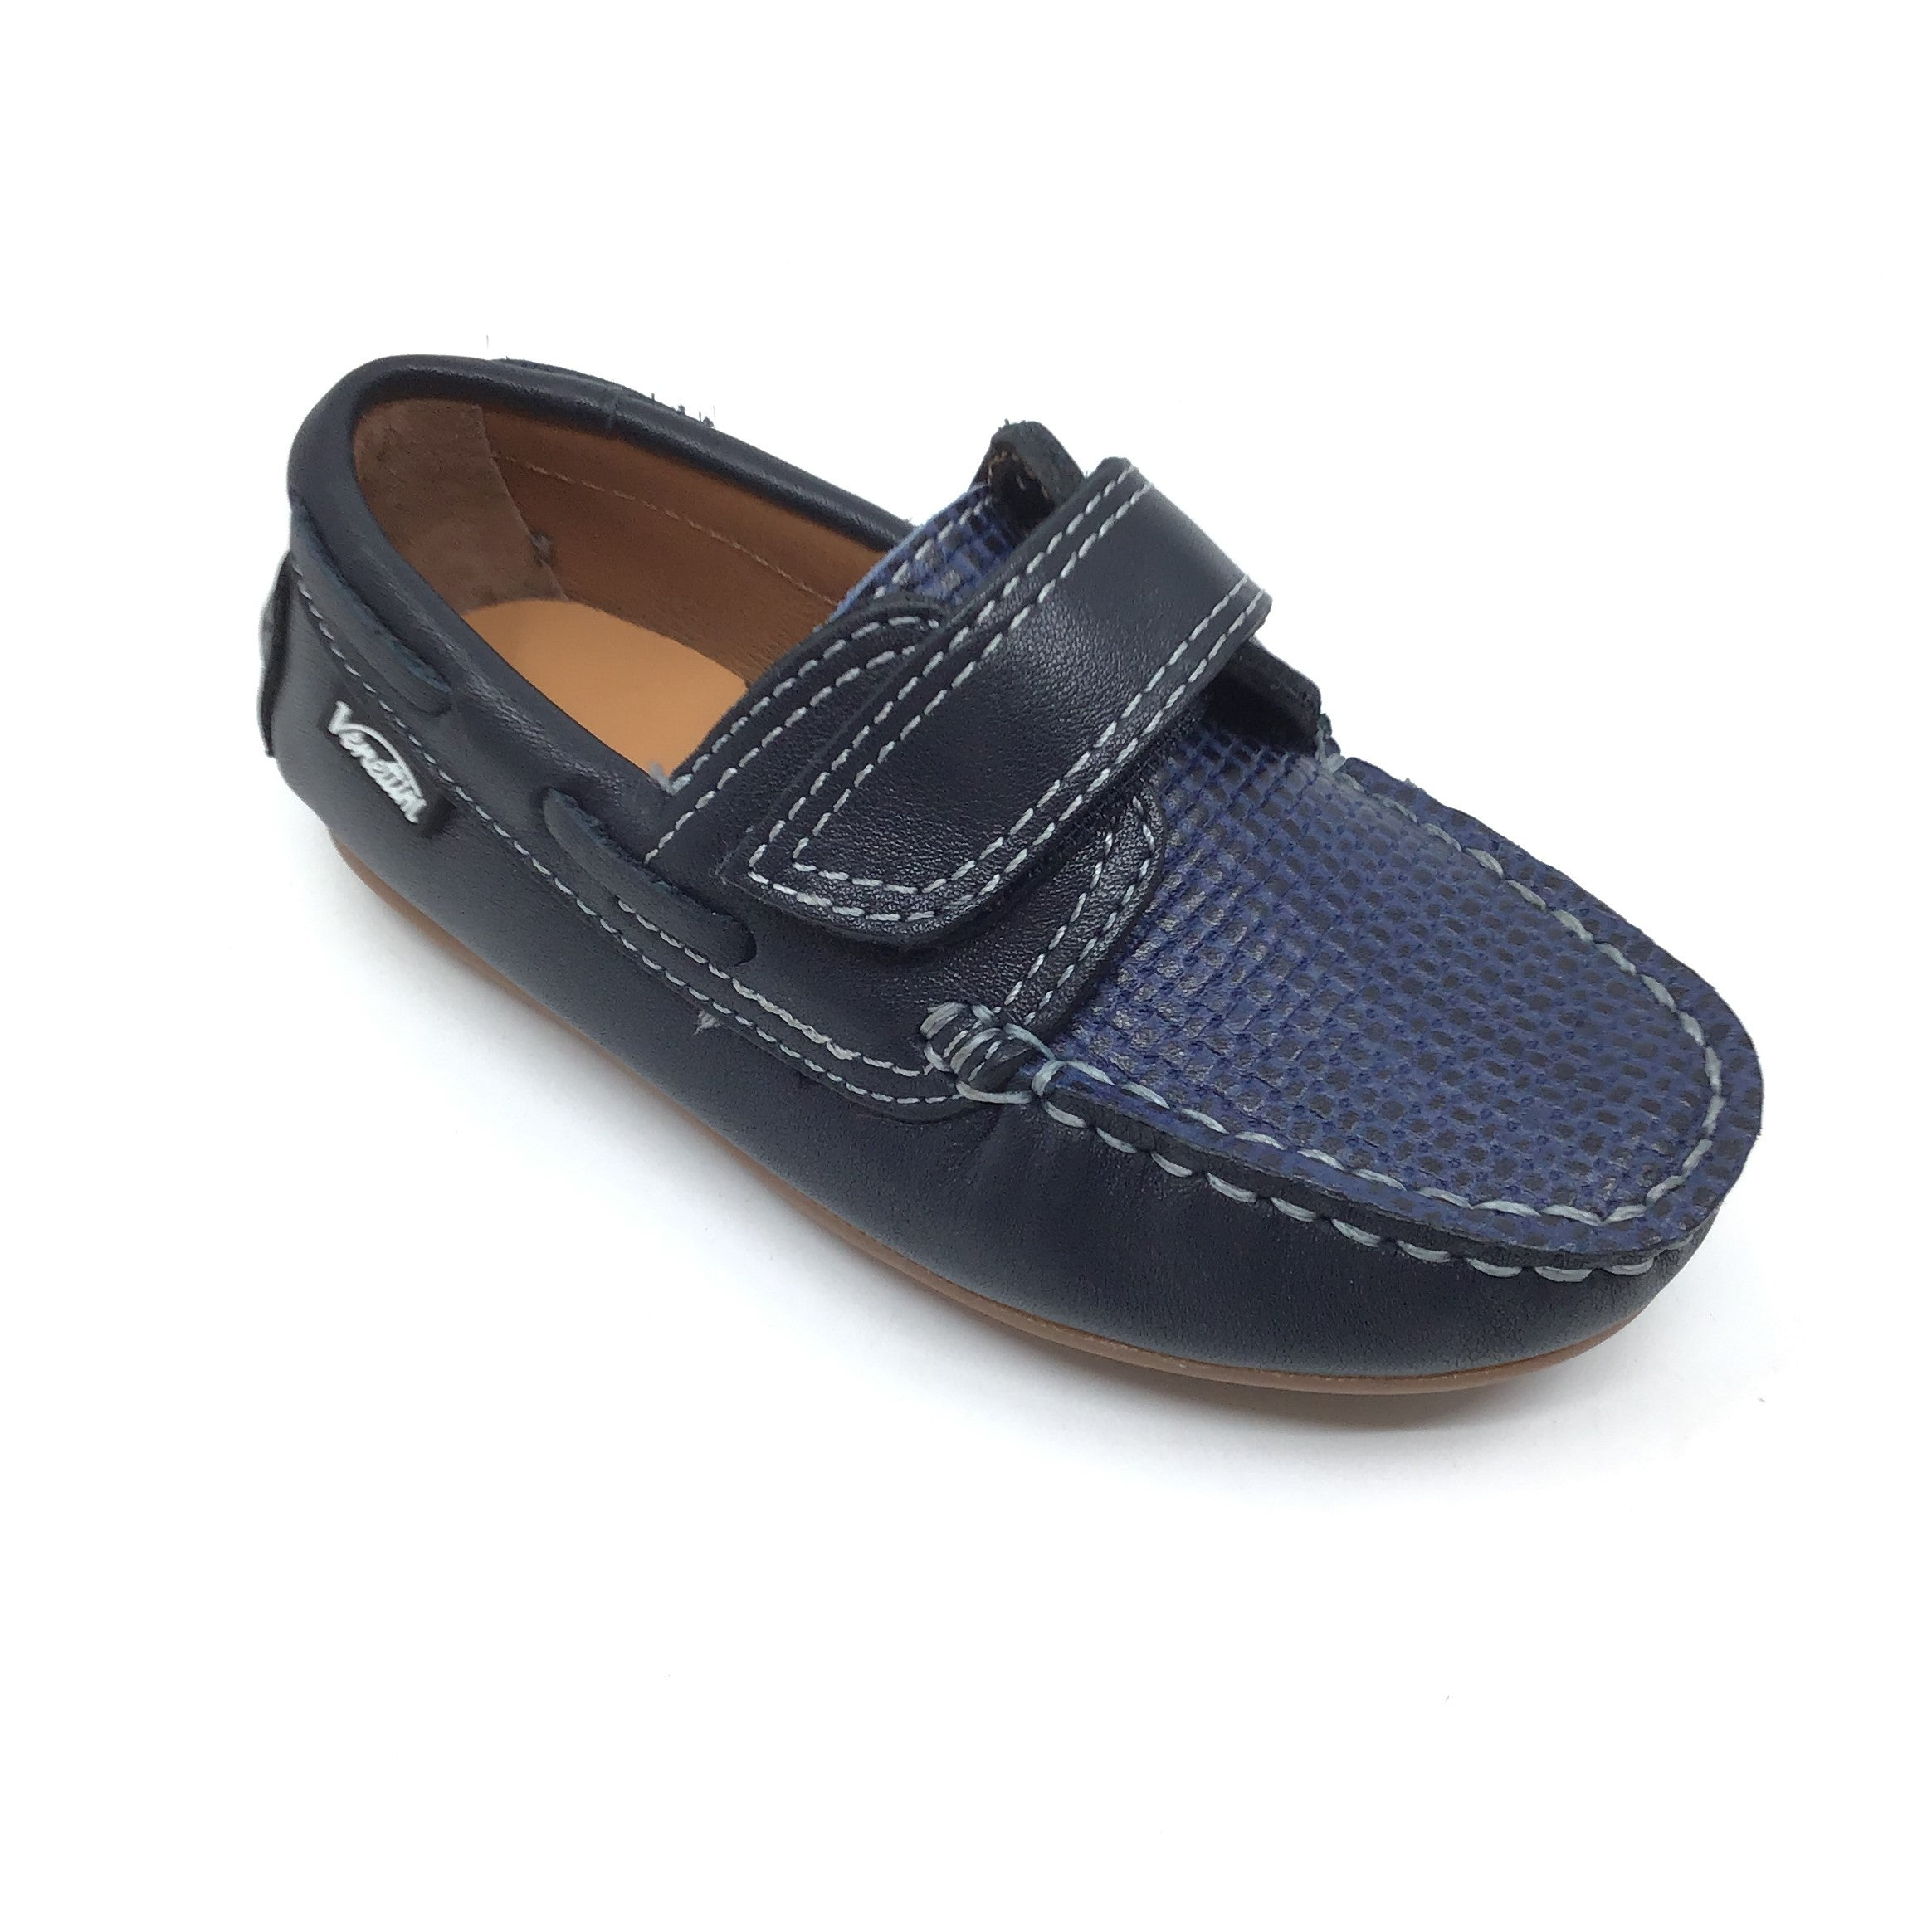 Venettini Blue Velcro Loafer with Front Texture